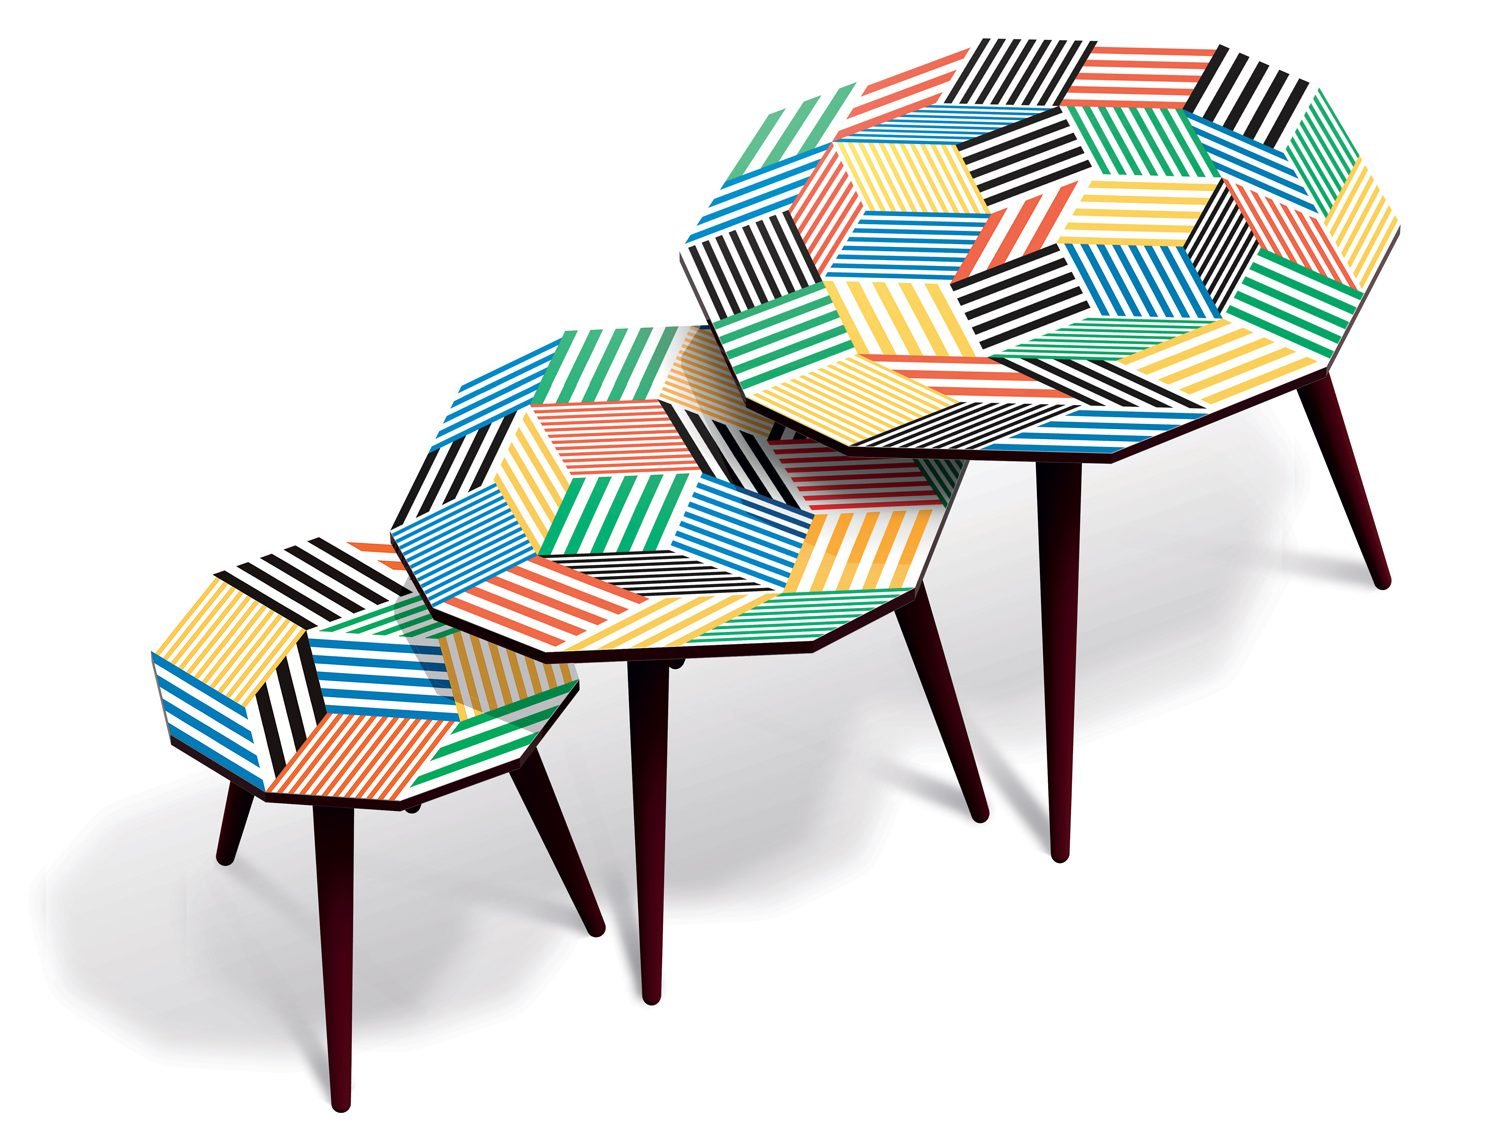 Trio de tables basses aux motifs de pavages de Penrose Stripes, design Ich&Kar, édition Bazartherapy